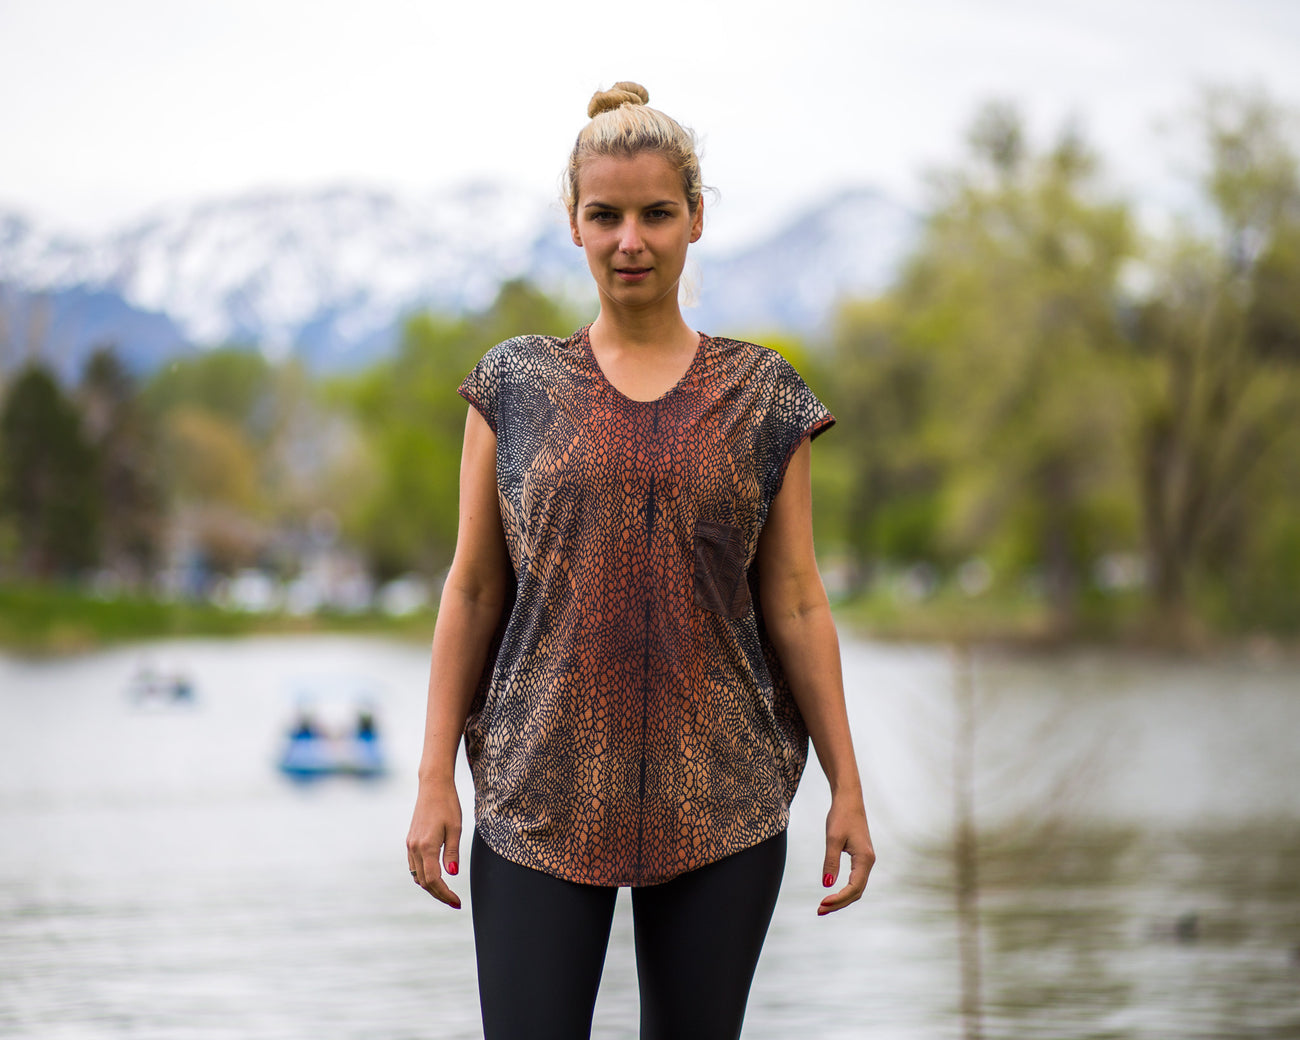 Kate exercise Tee with pocket by Uintah Collection